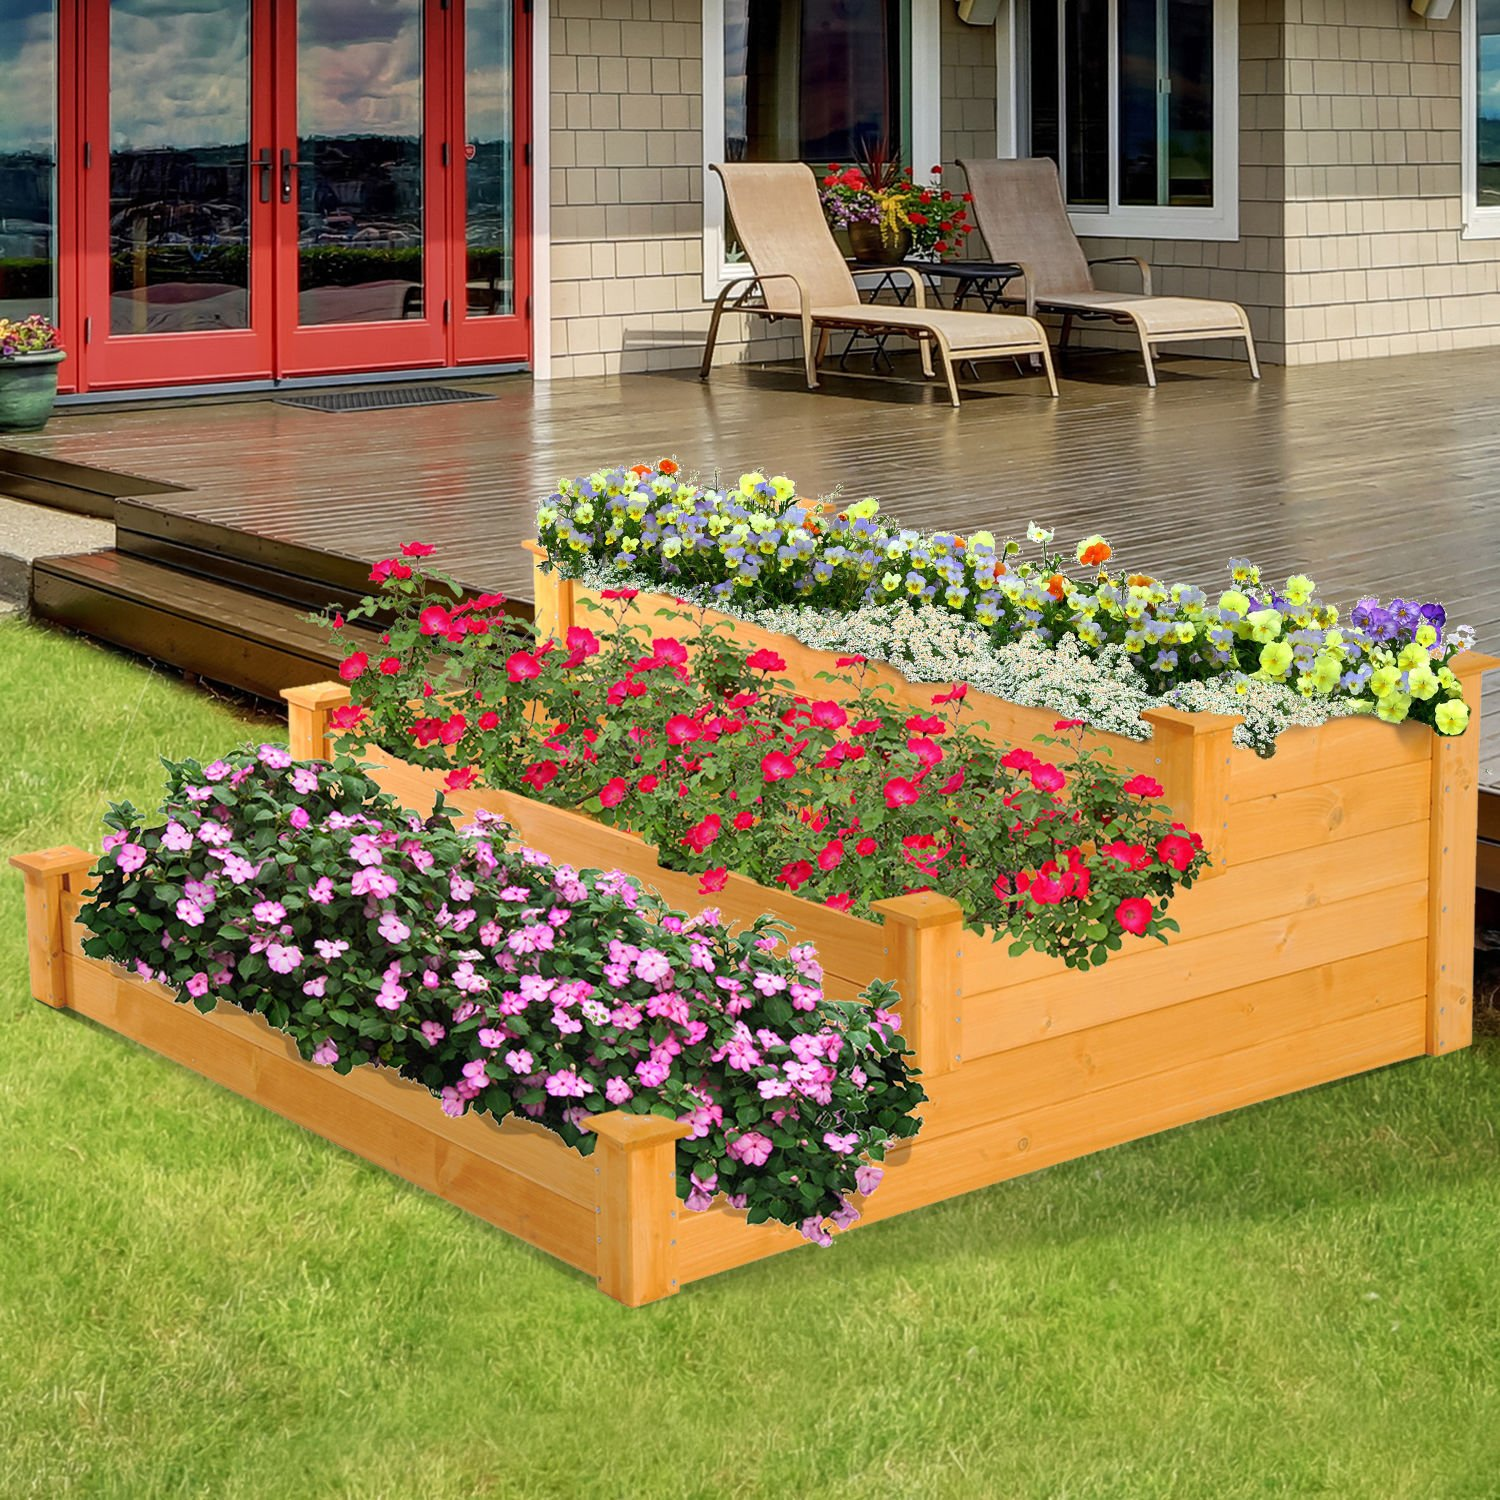 Generic O-8-O-4289-O r Outdo Raised Planter ed Plan Vegetable Flower Flower 3_tier Wooden Garden d Veget Outdoor Garden en Bed Bed Elevated NV_1008004289-TYQFUS32